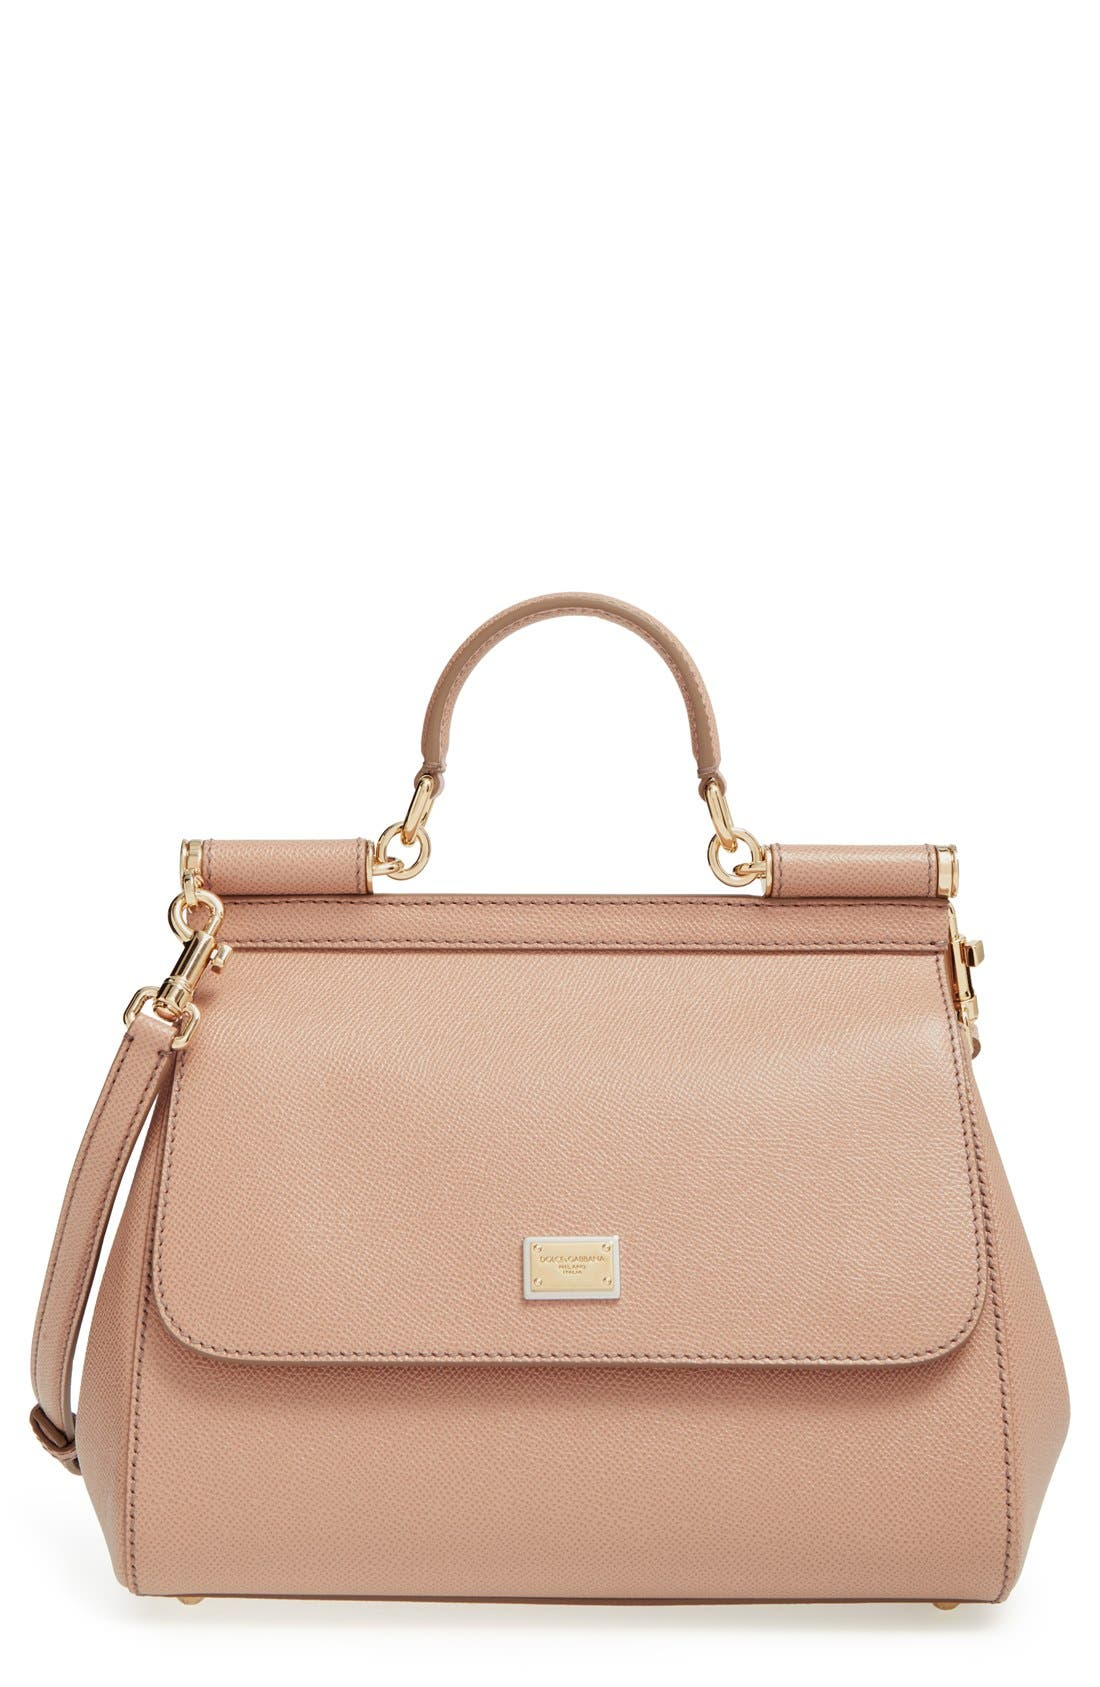 Main Image - Dolce&Gabbana 'Small Miss Sicily' Leather Satchel